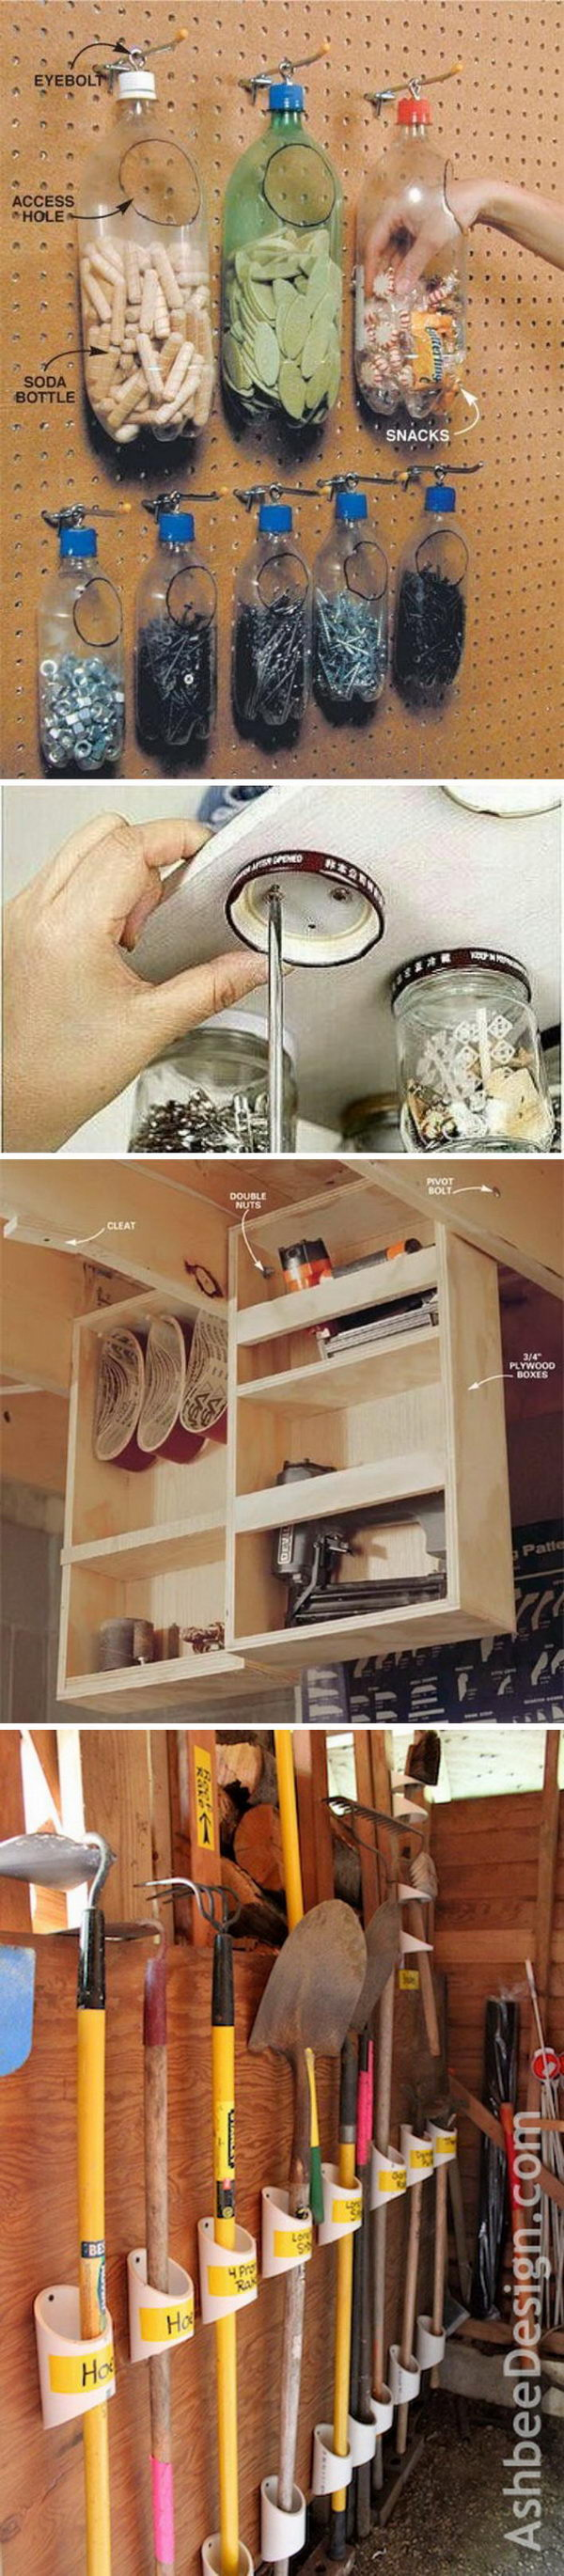 Clever Garage Organization and Storage Ideas.